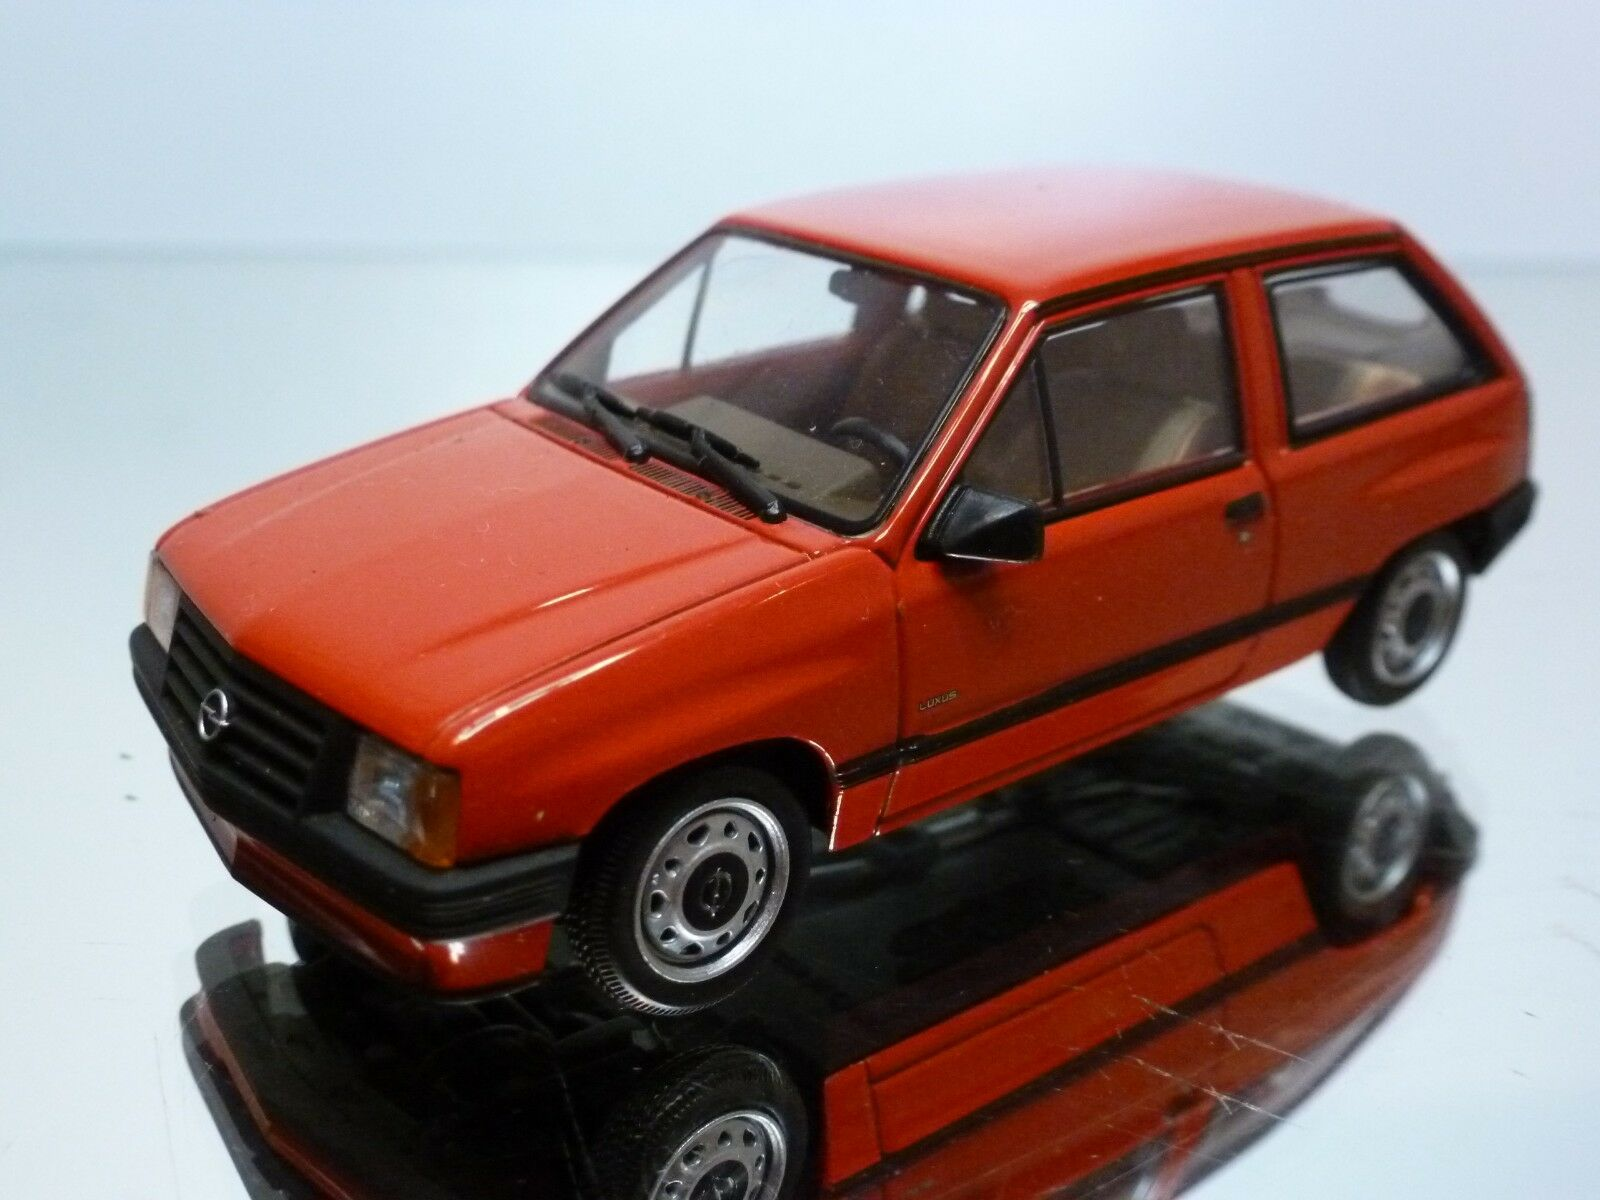 MINICHAMPS OPEL CORSA A - RED 1:43 - EXCELLENT CONDITION - 22